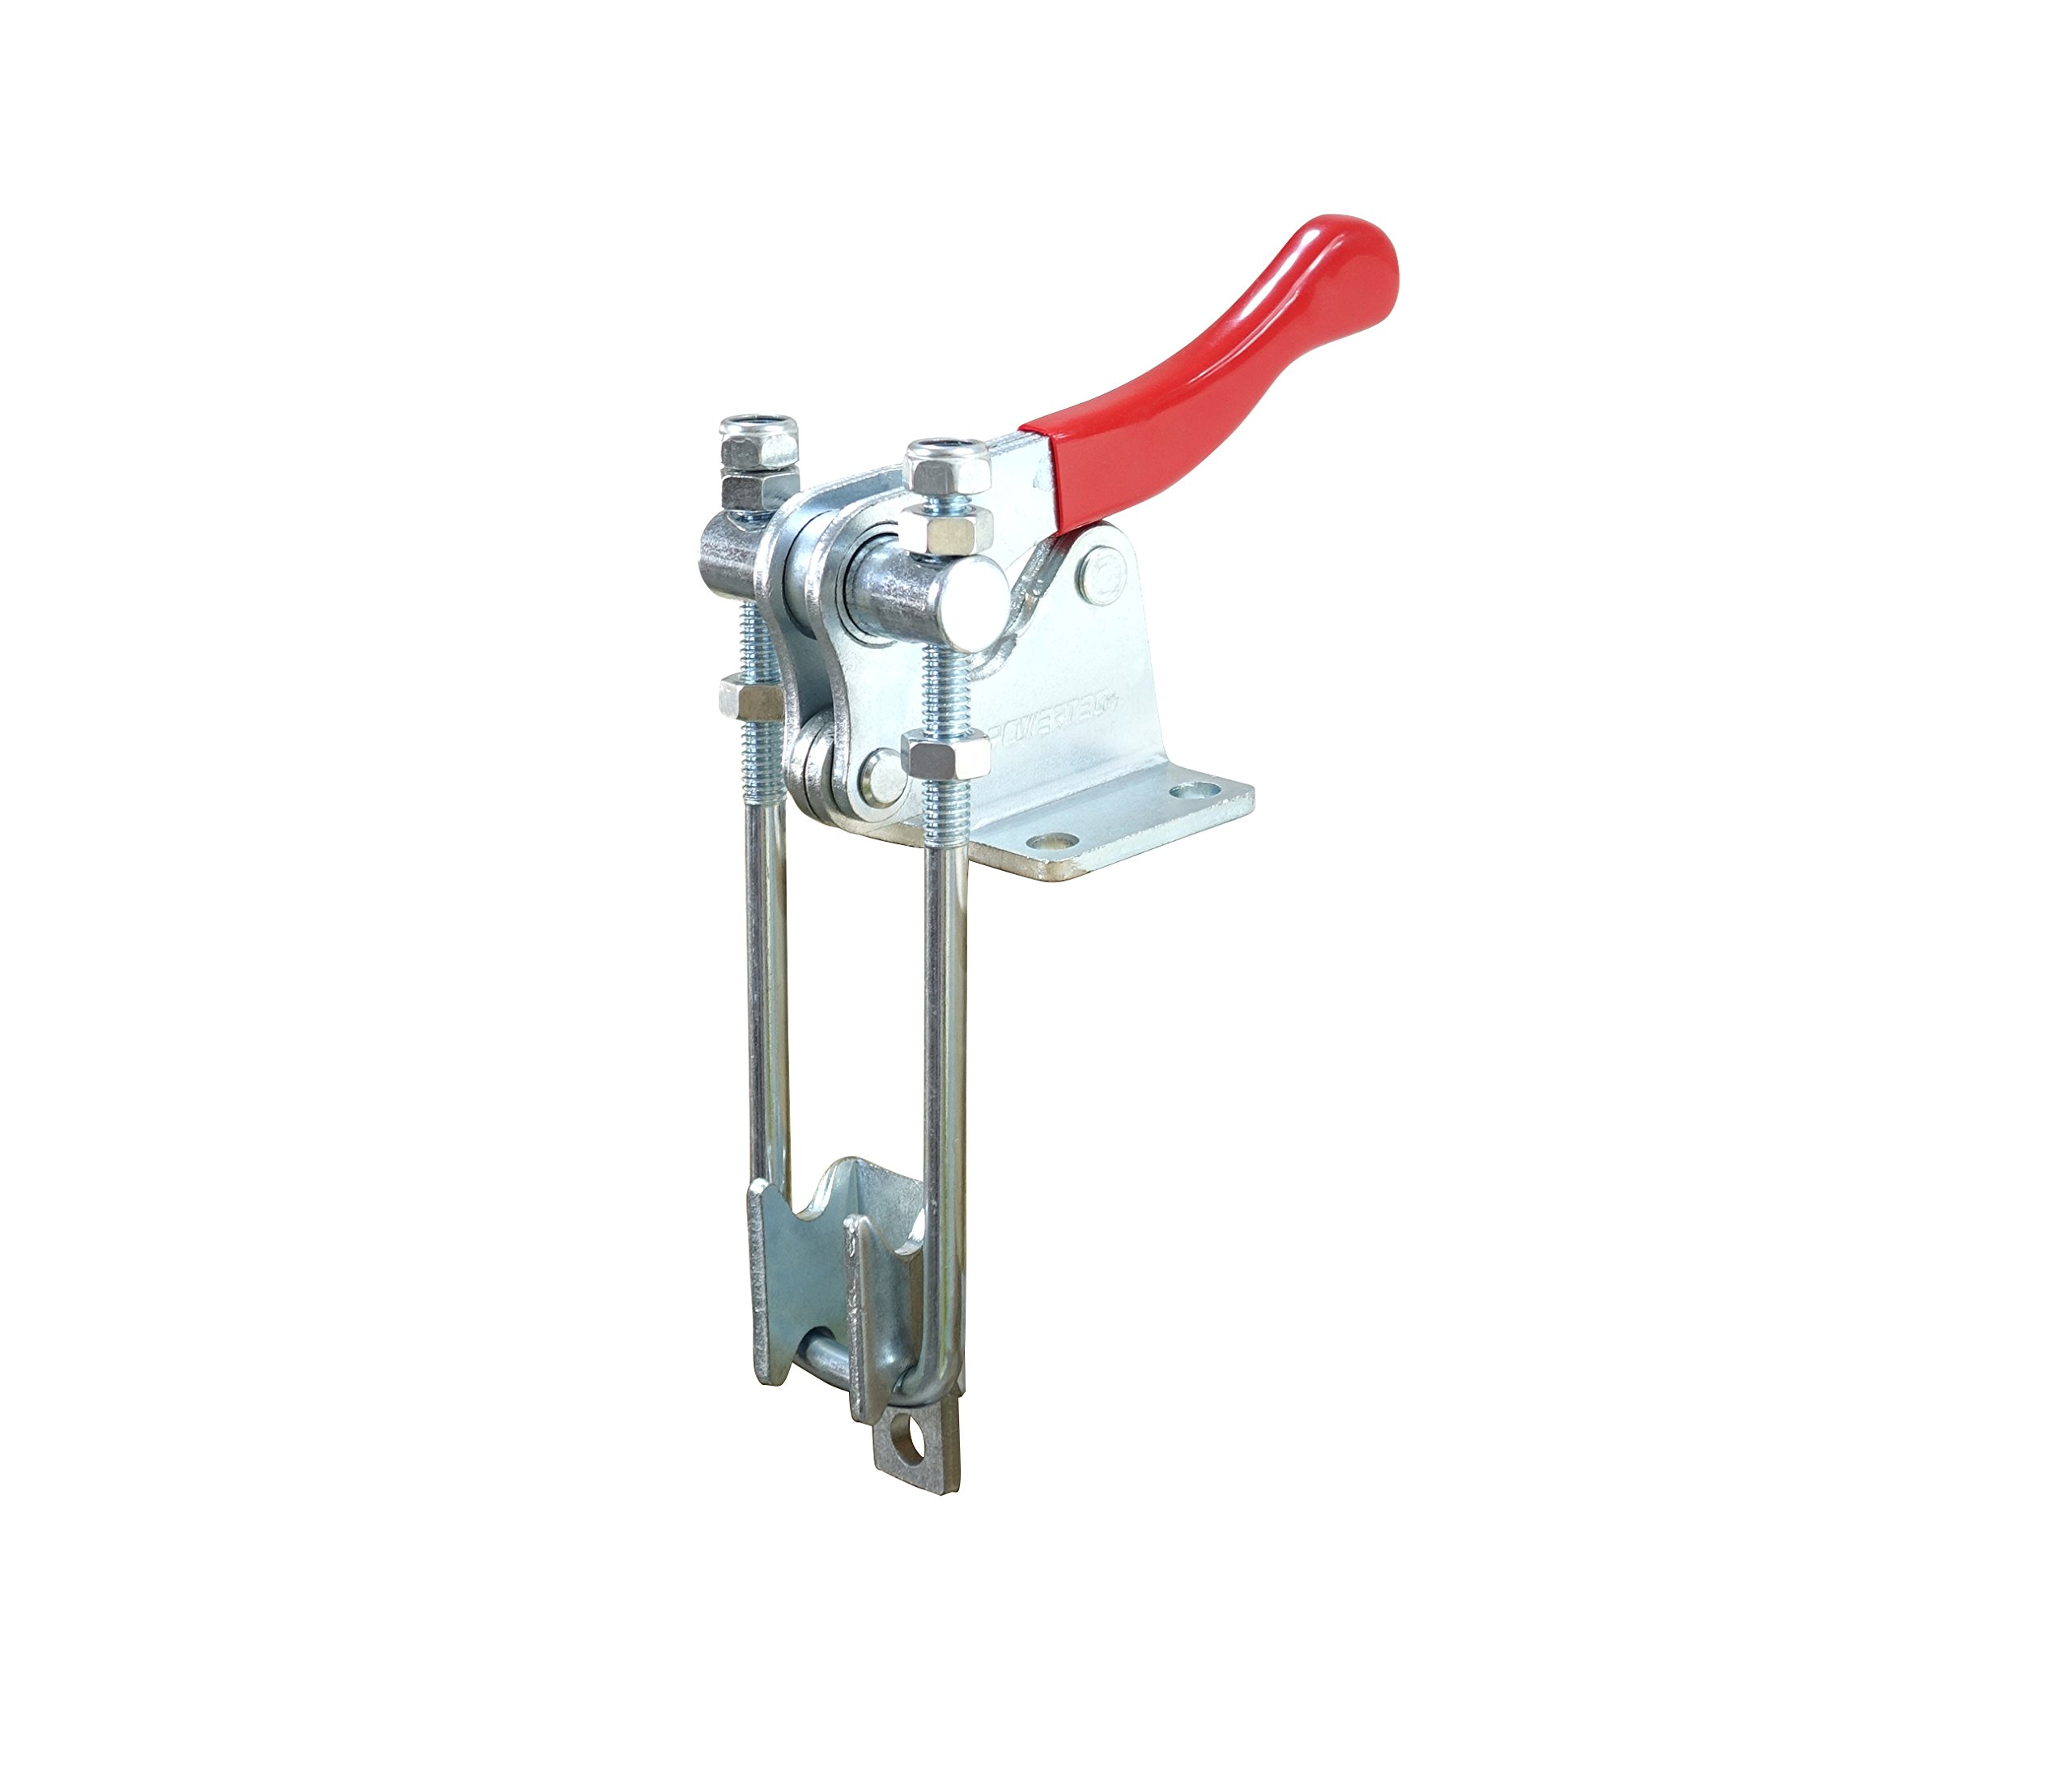 POWERTEC 20324 Latch-Action Toggle Clamp, 1980 lbs Capacity, 40344, 1PK